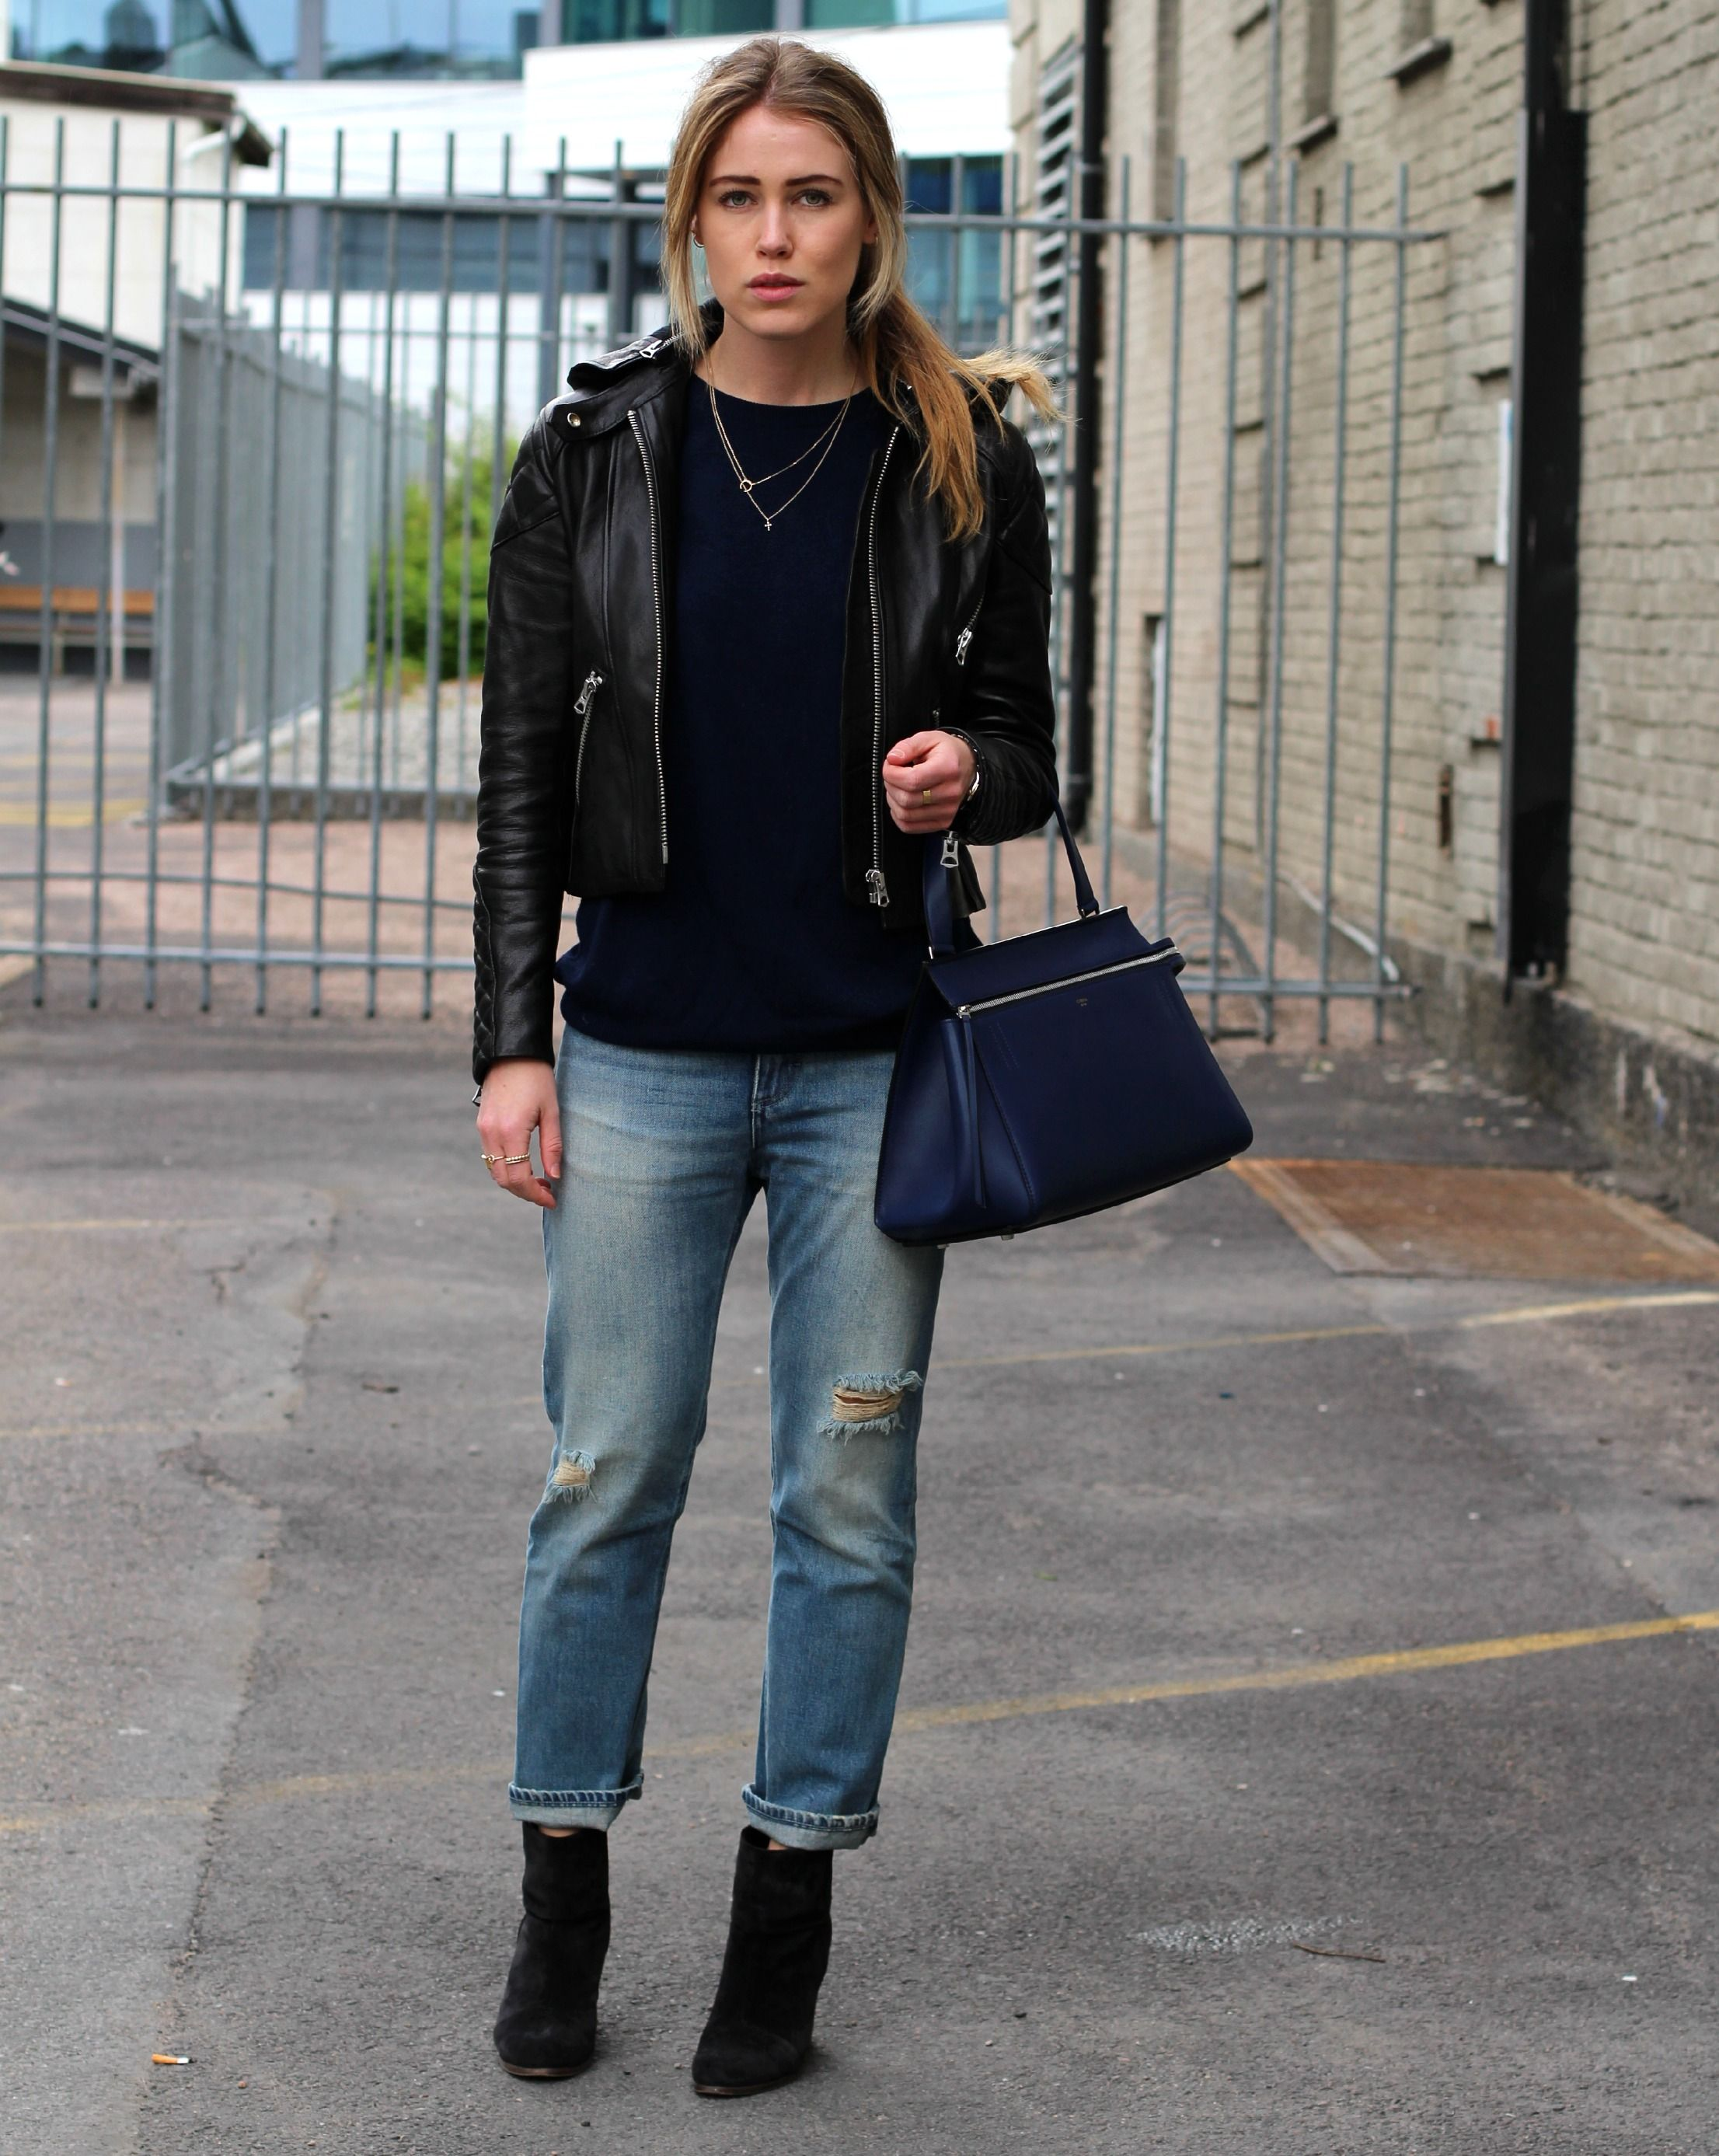 fe7c598859 Annabel Rosendahl    Black ankle boots and sweater + boyfriend jeans +  leather jacket    casual fall style